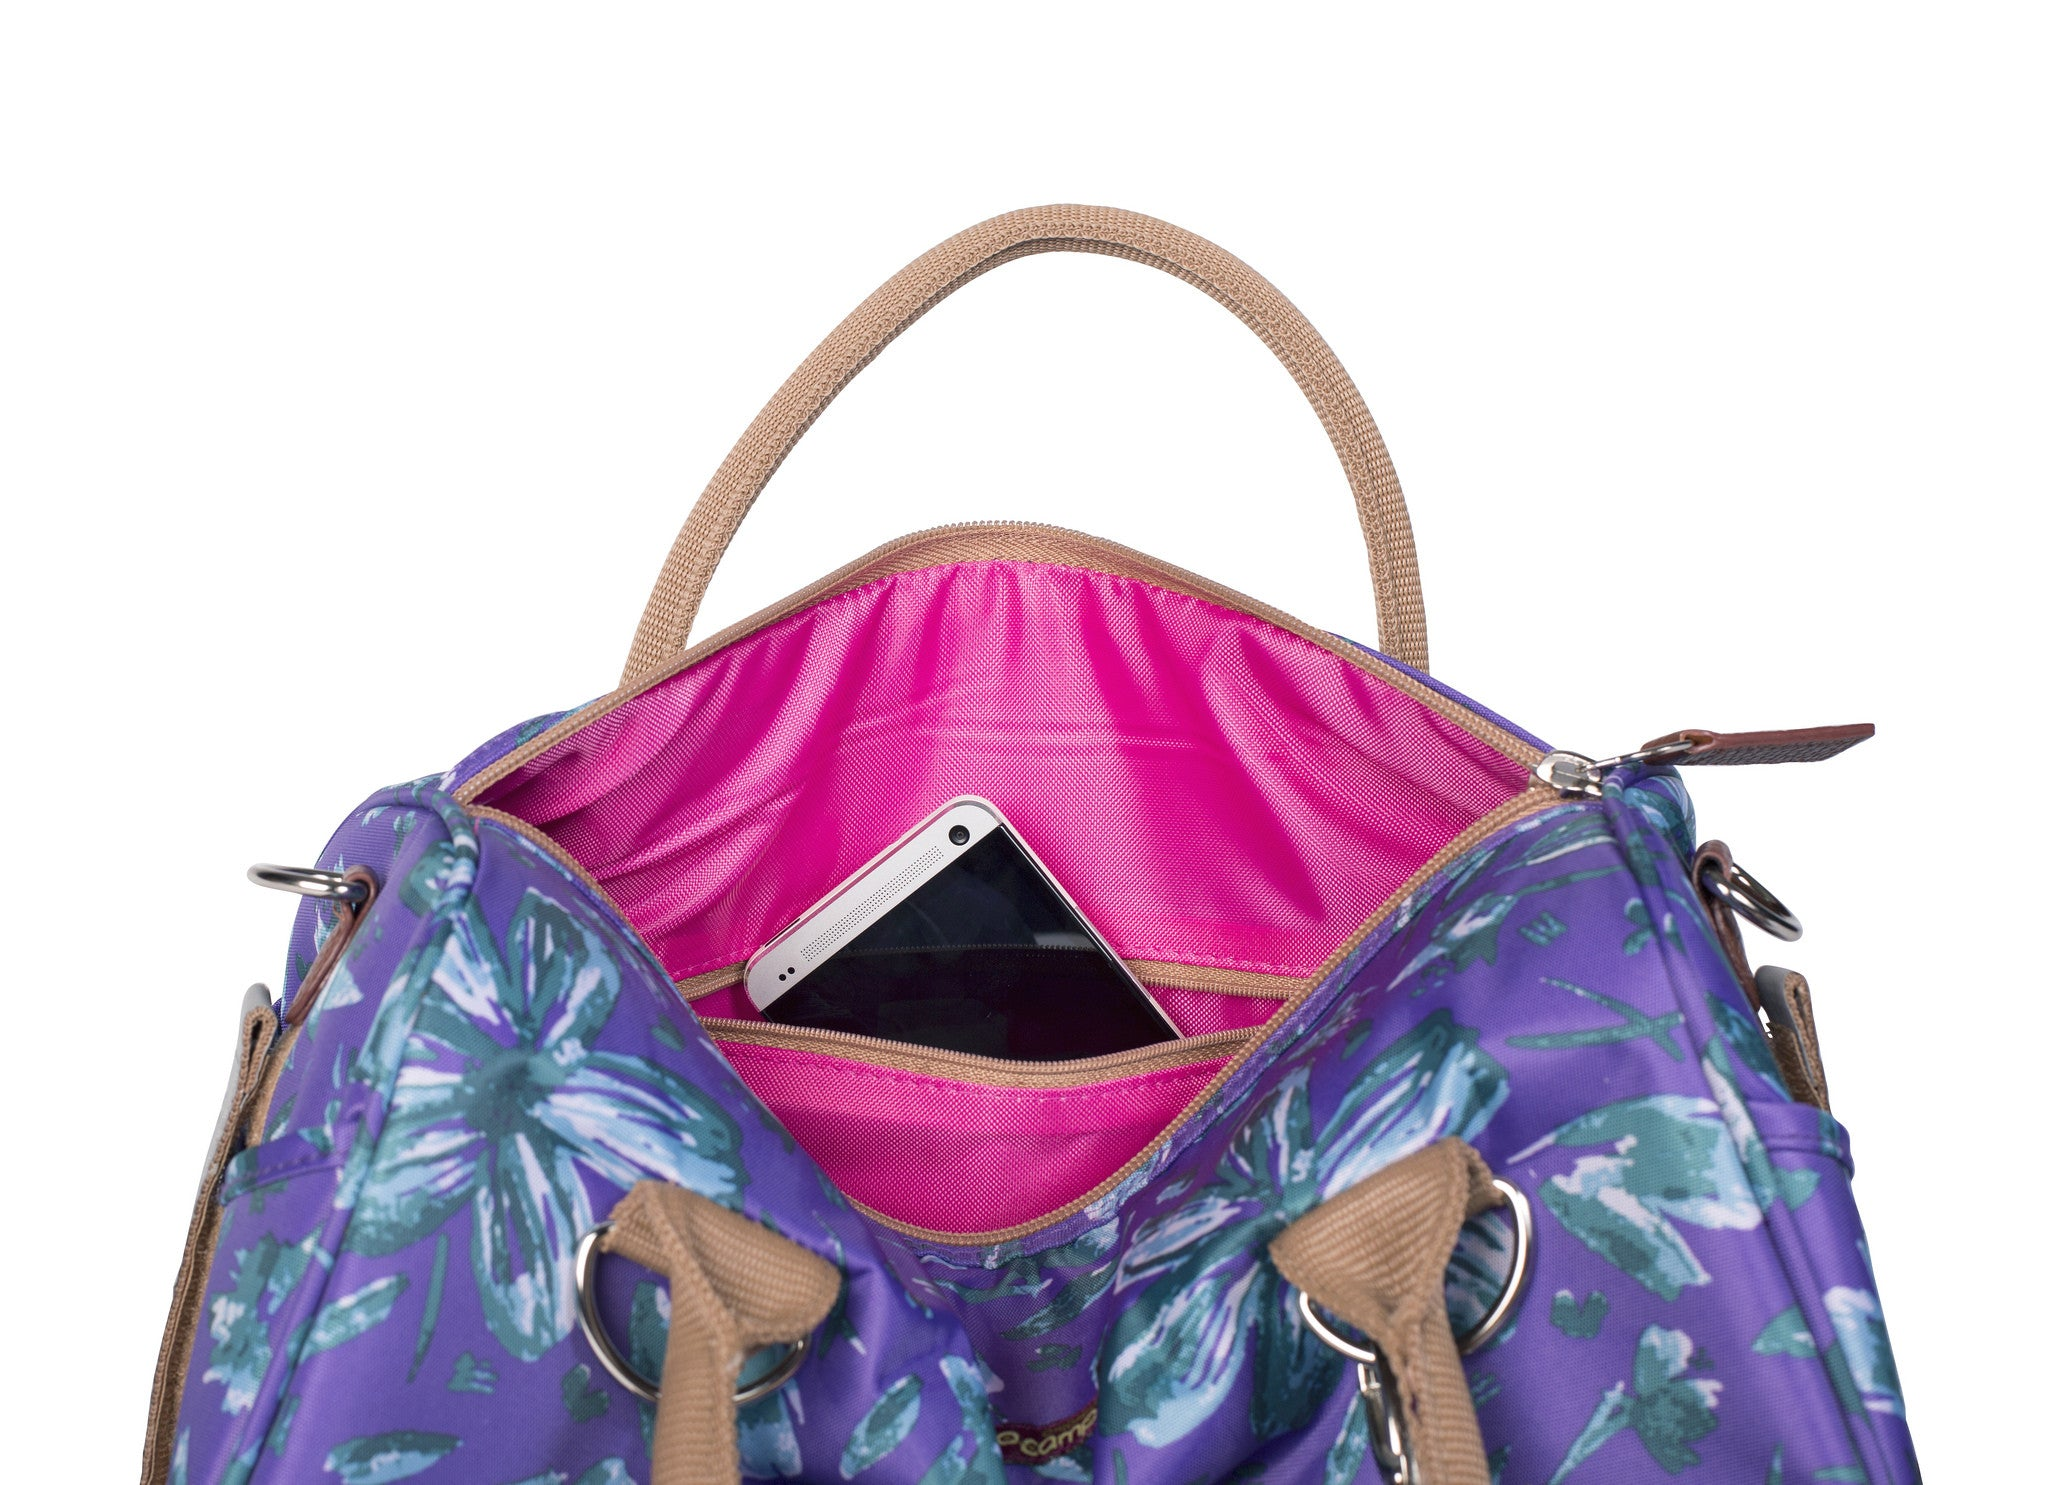 Po Campo Logan Trunk Bag in purple petals inside view of bag